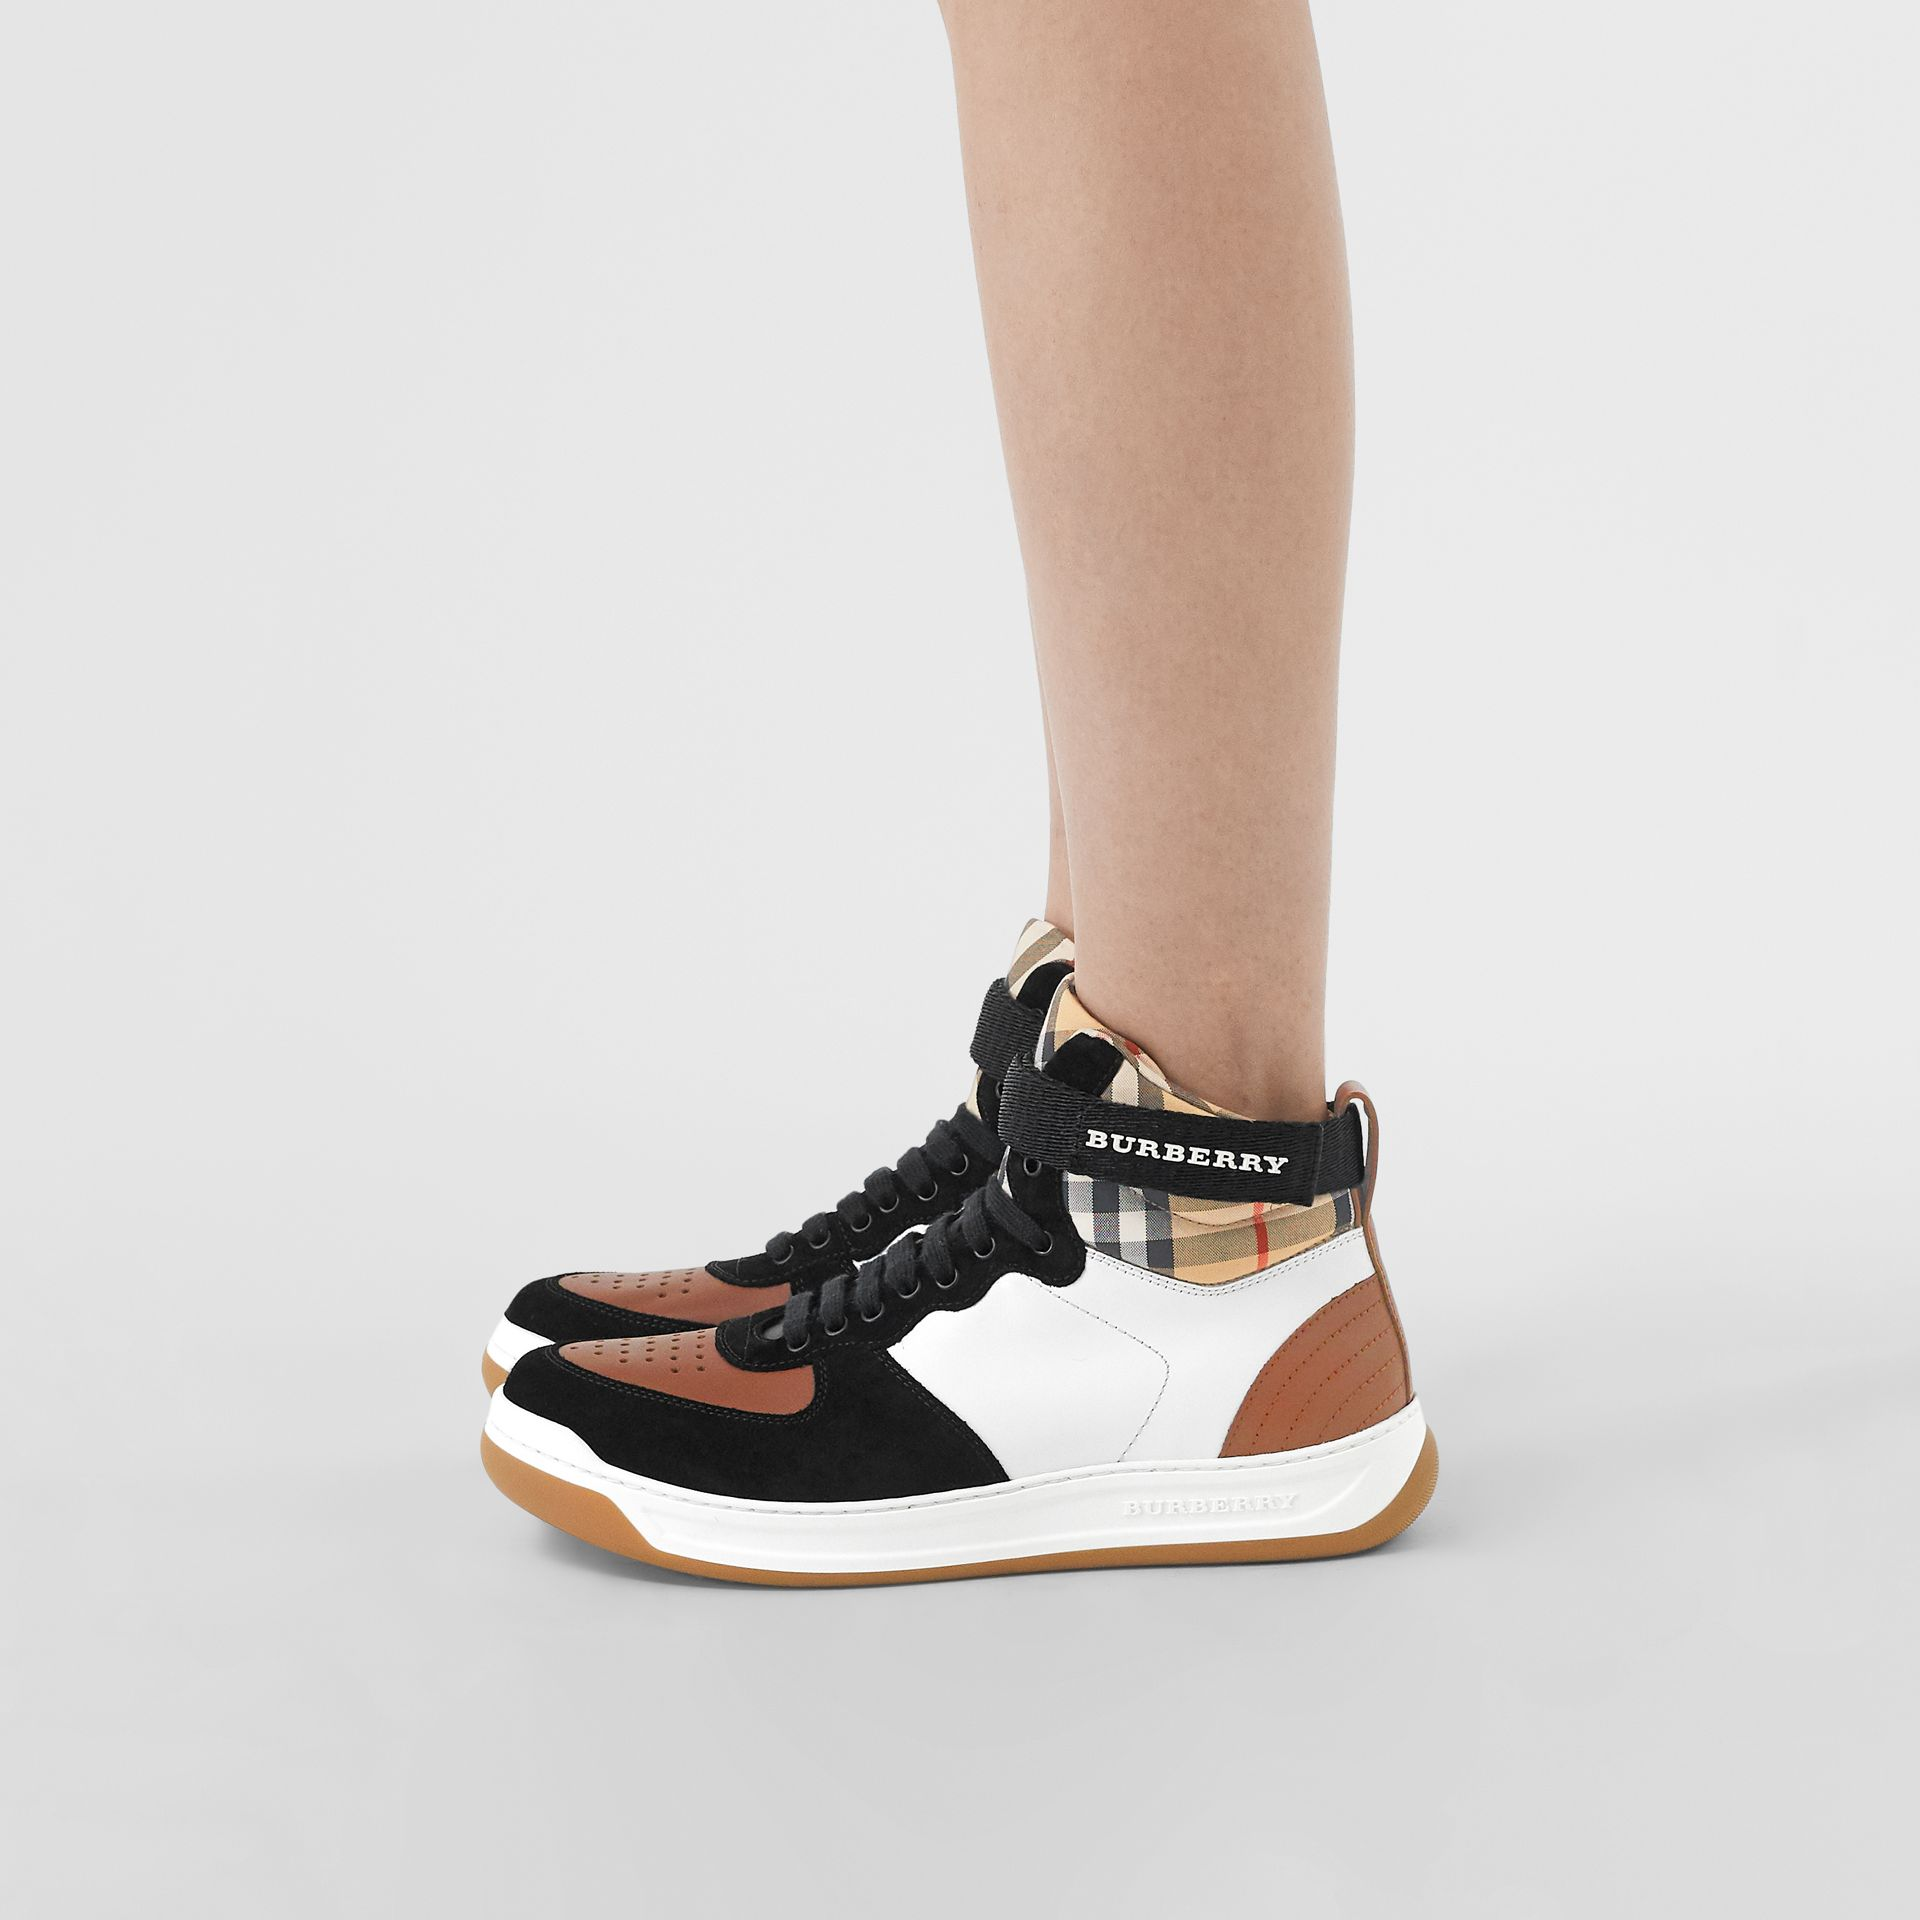 Leather and Suede High-top Sneakers in Camel - Women | Burberry - gallery image 2